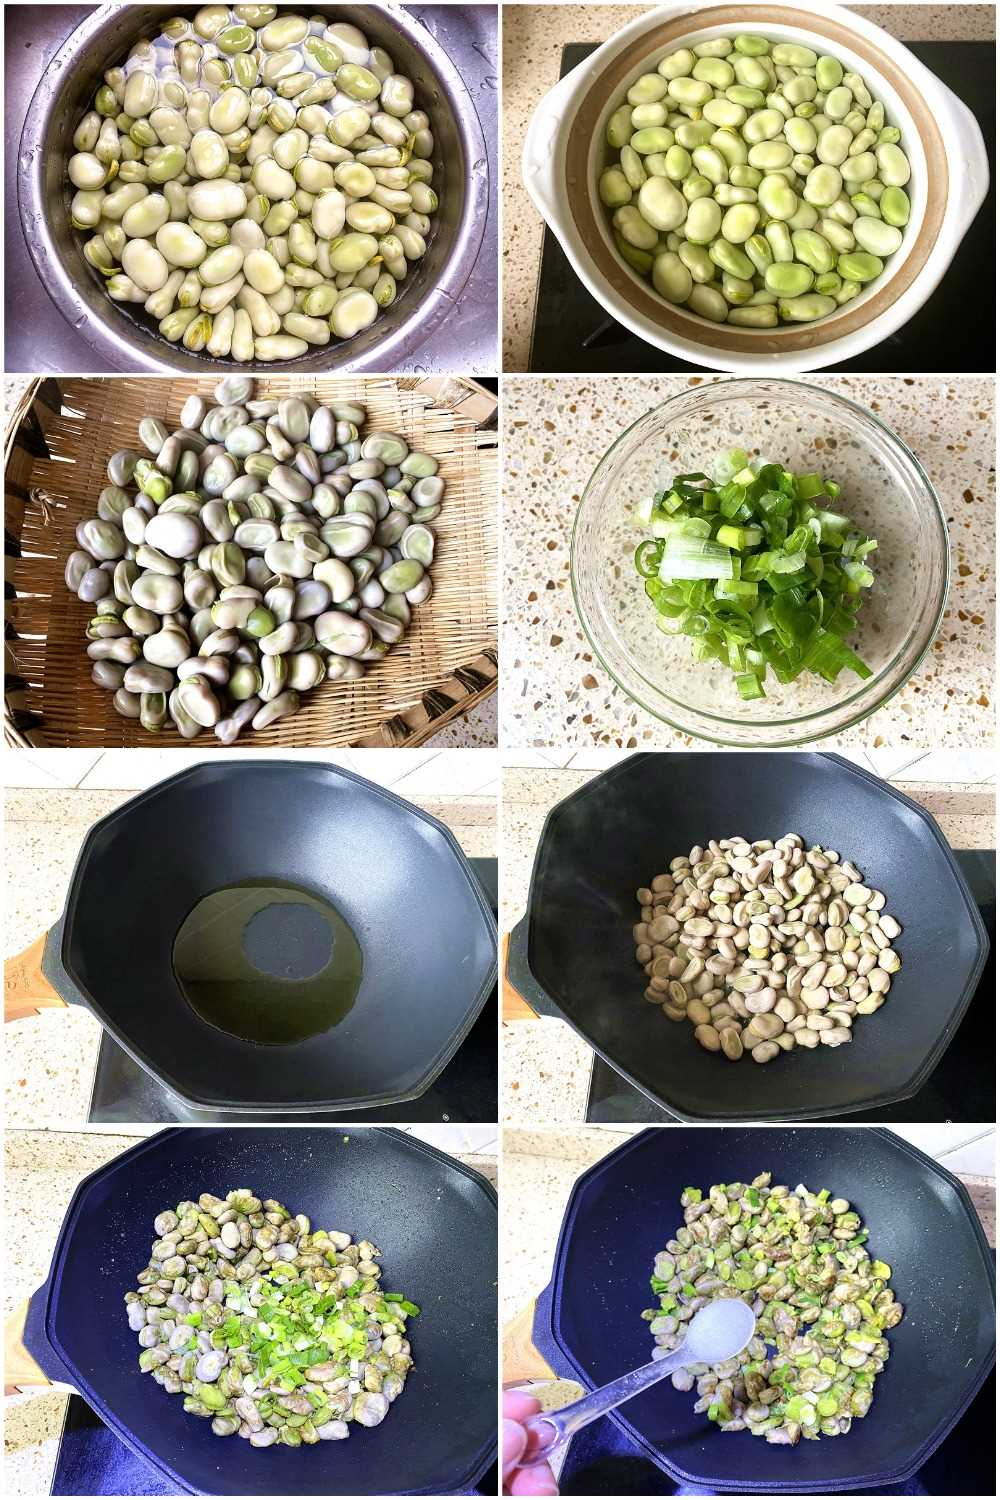 Pan fried broad beans recipe how to cook fava beans easy